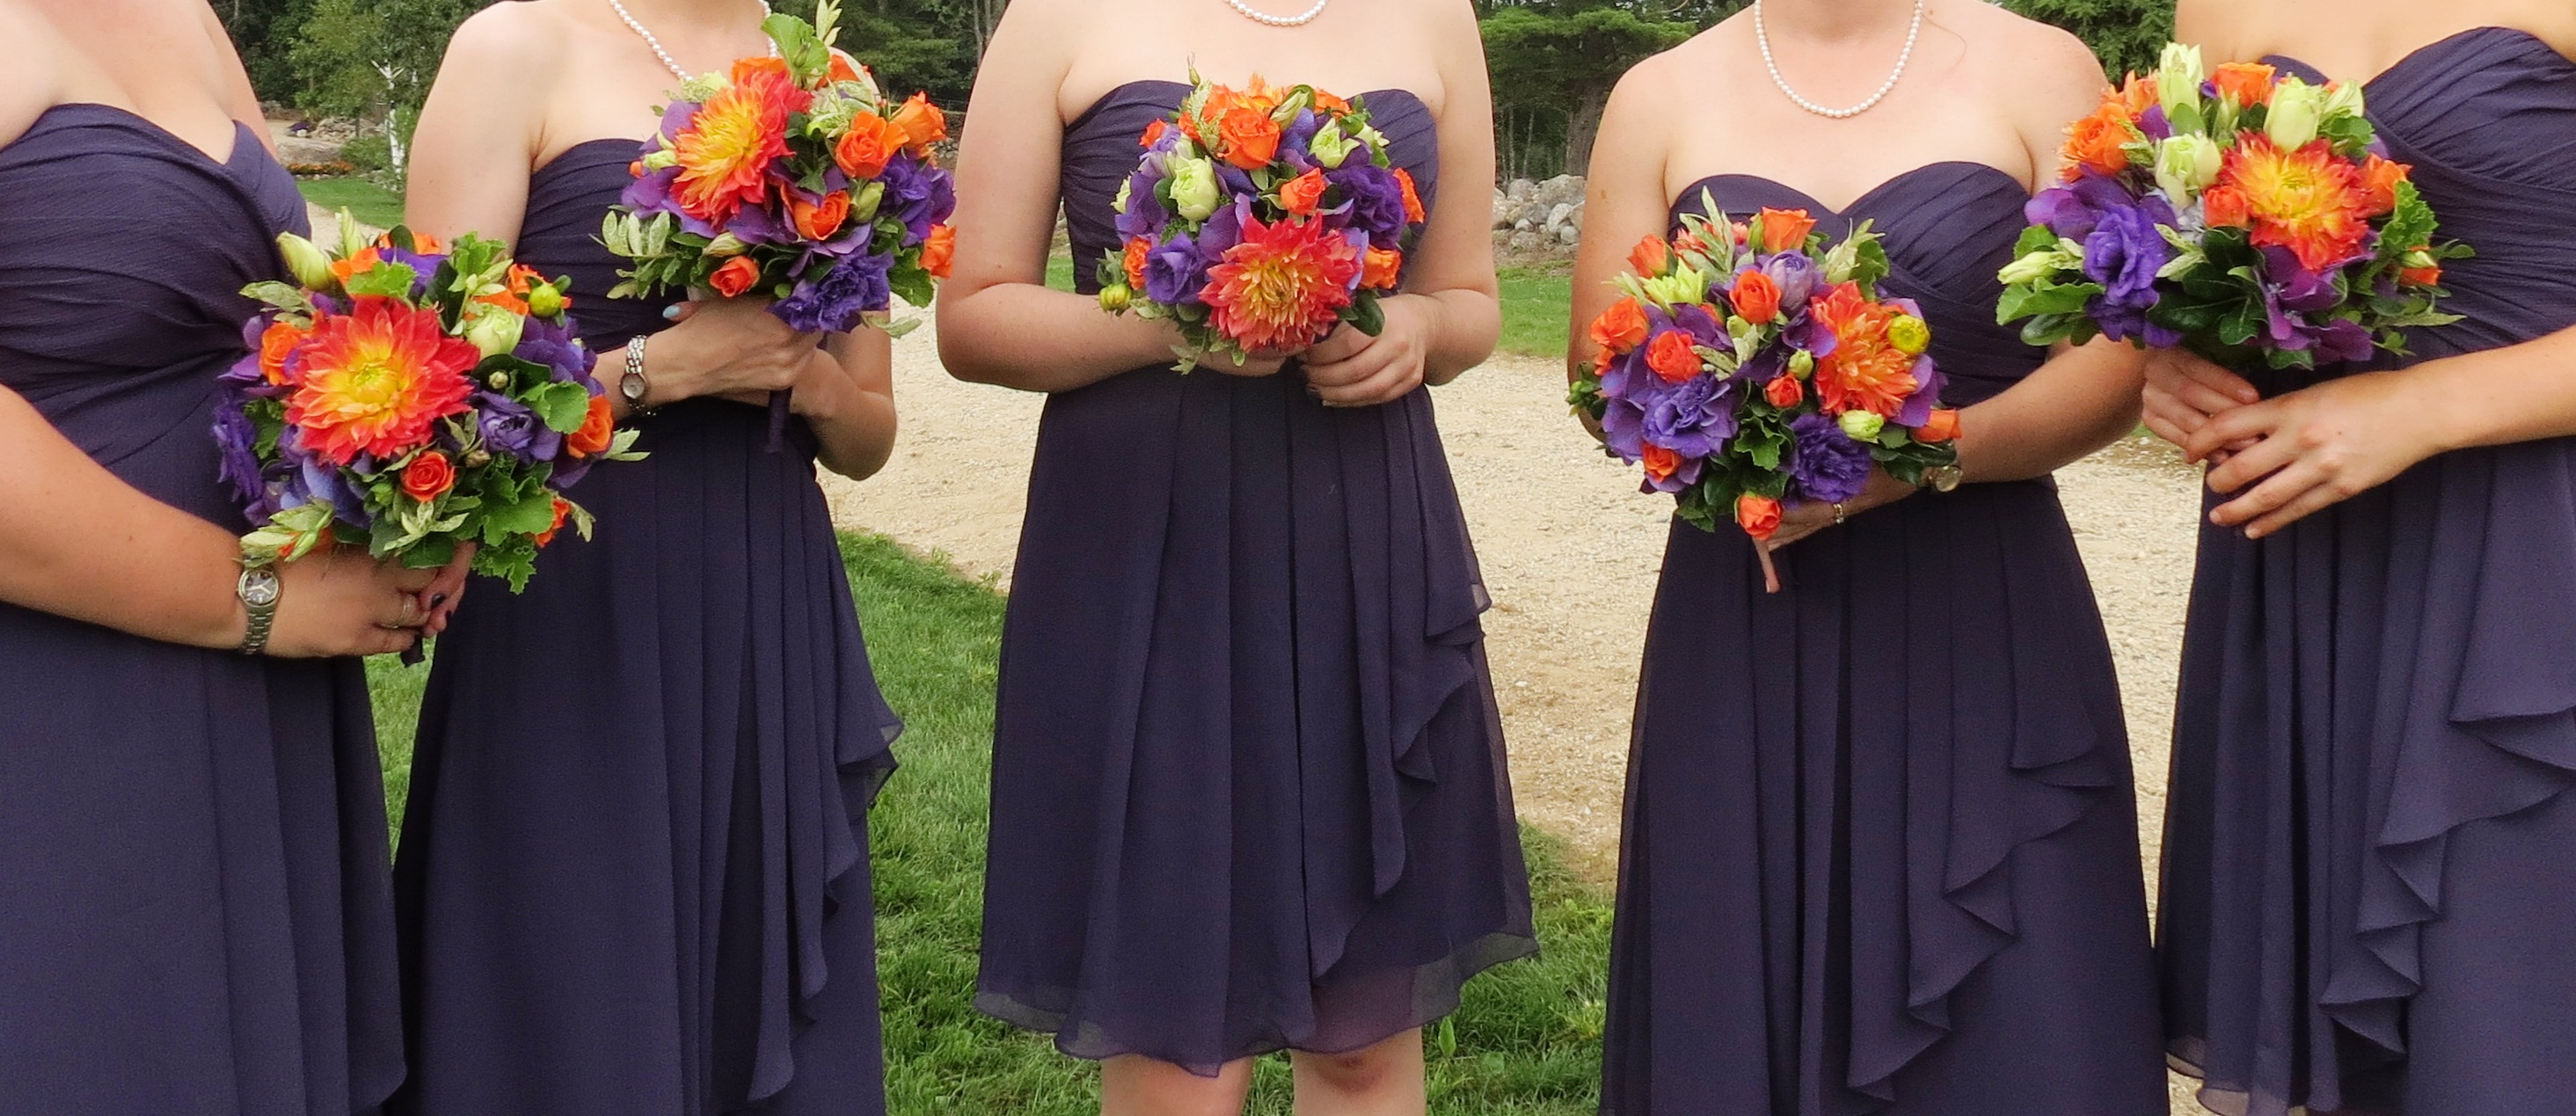 Bold, bright summer weddings | Wisteria Flower Shoppe News